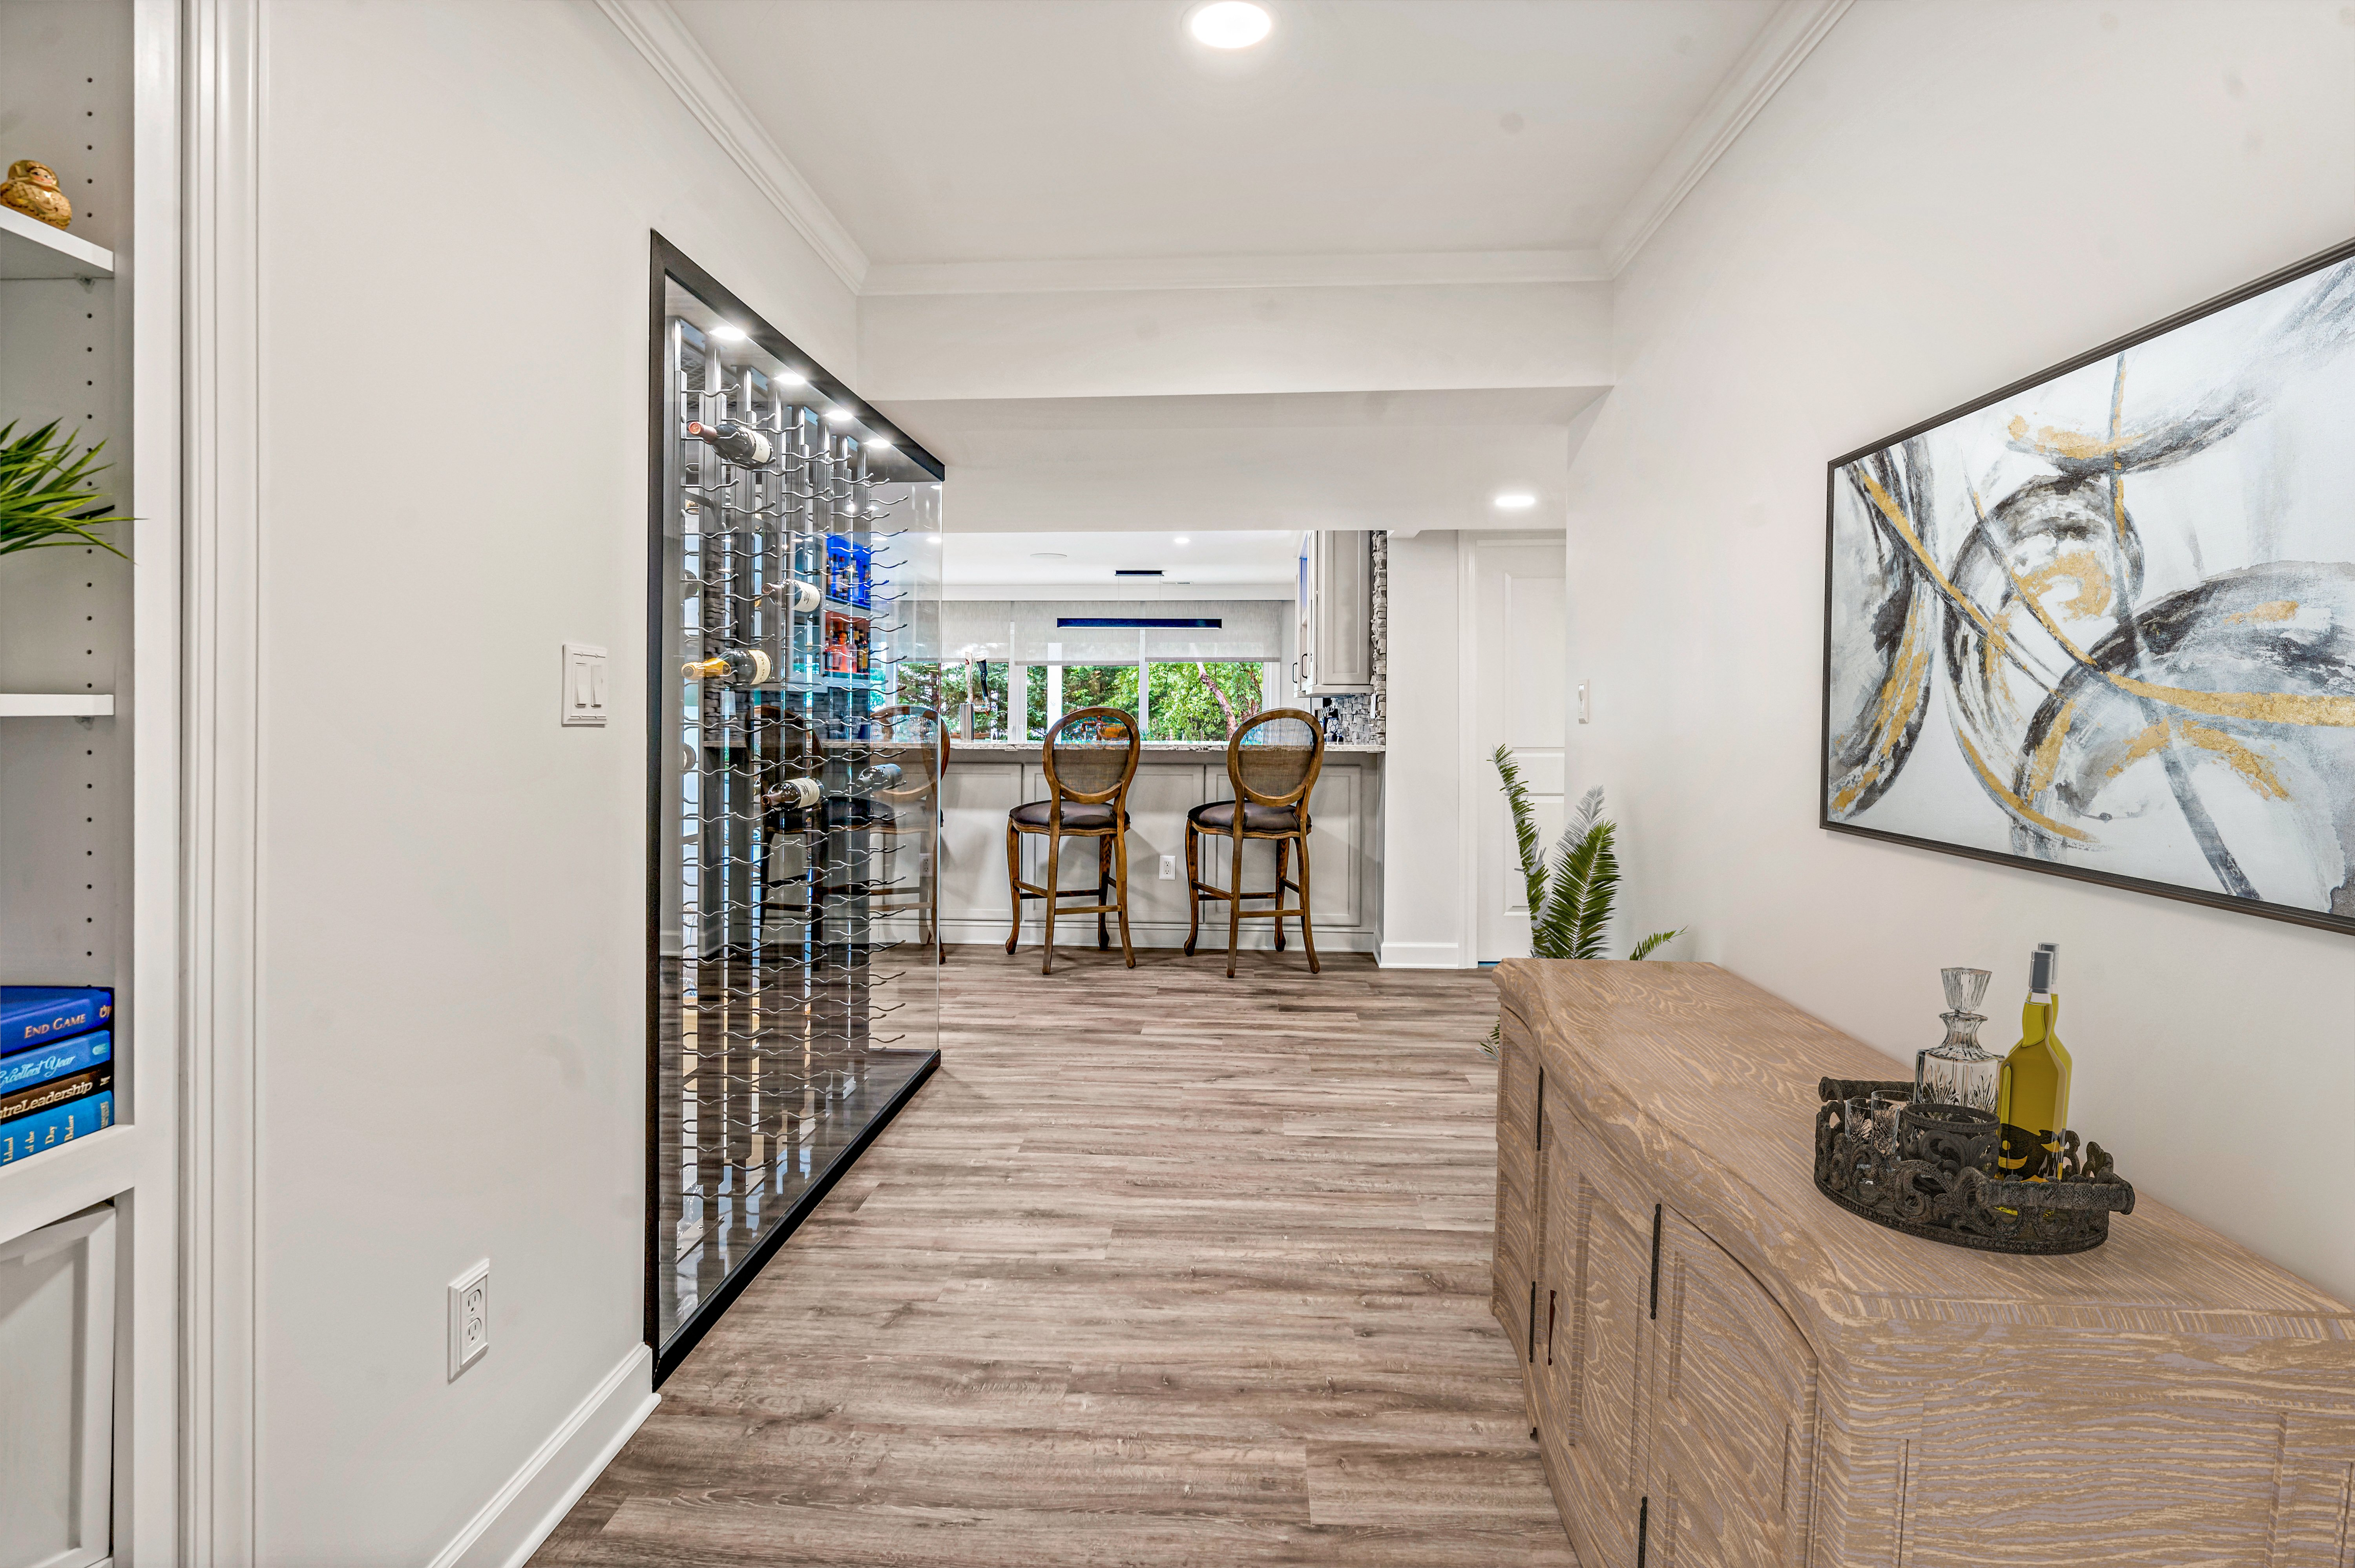 Incredible Northern Virginia Basement Remodel Features Wine Cellar and Media Room